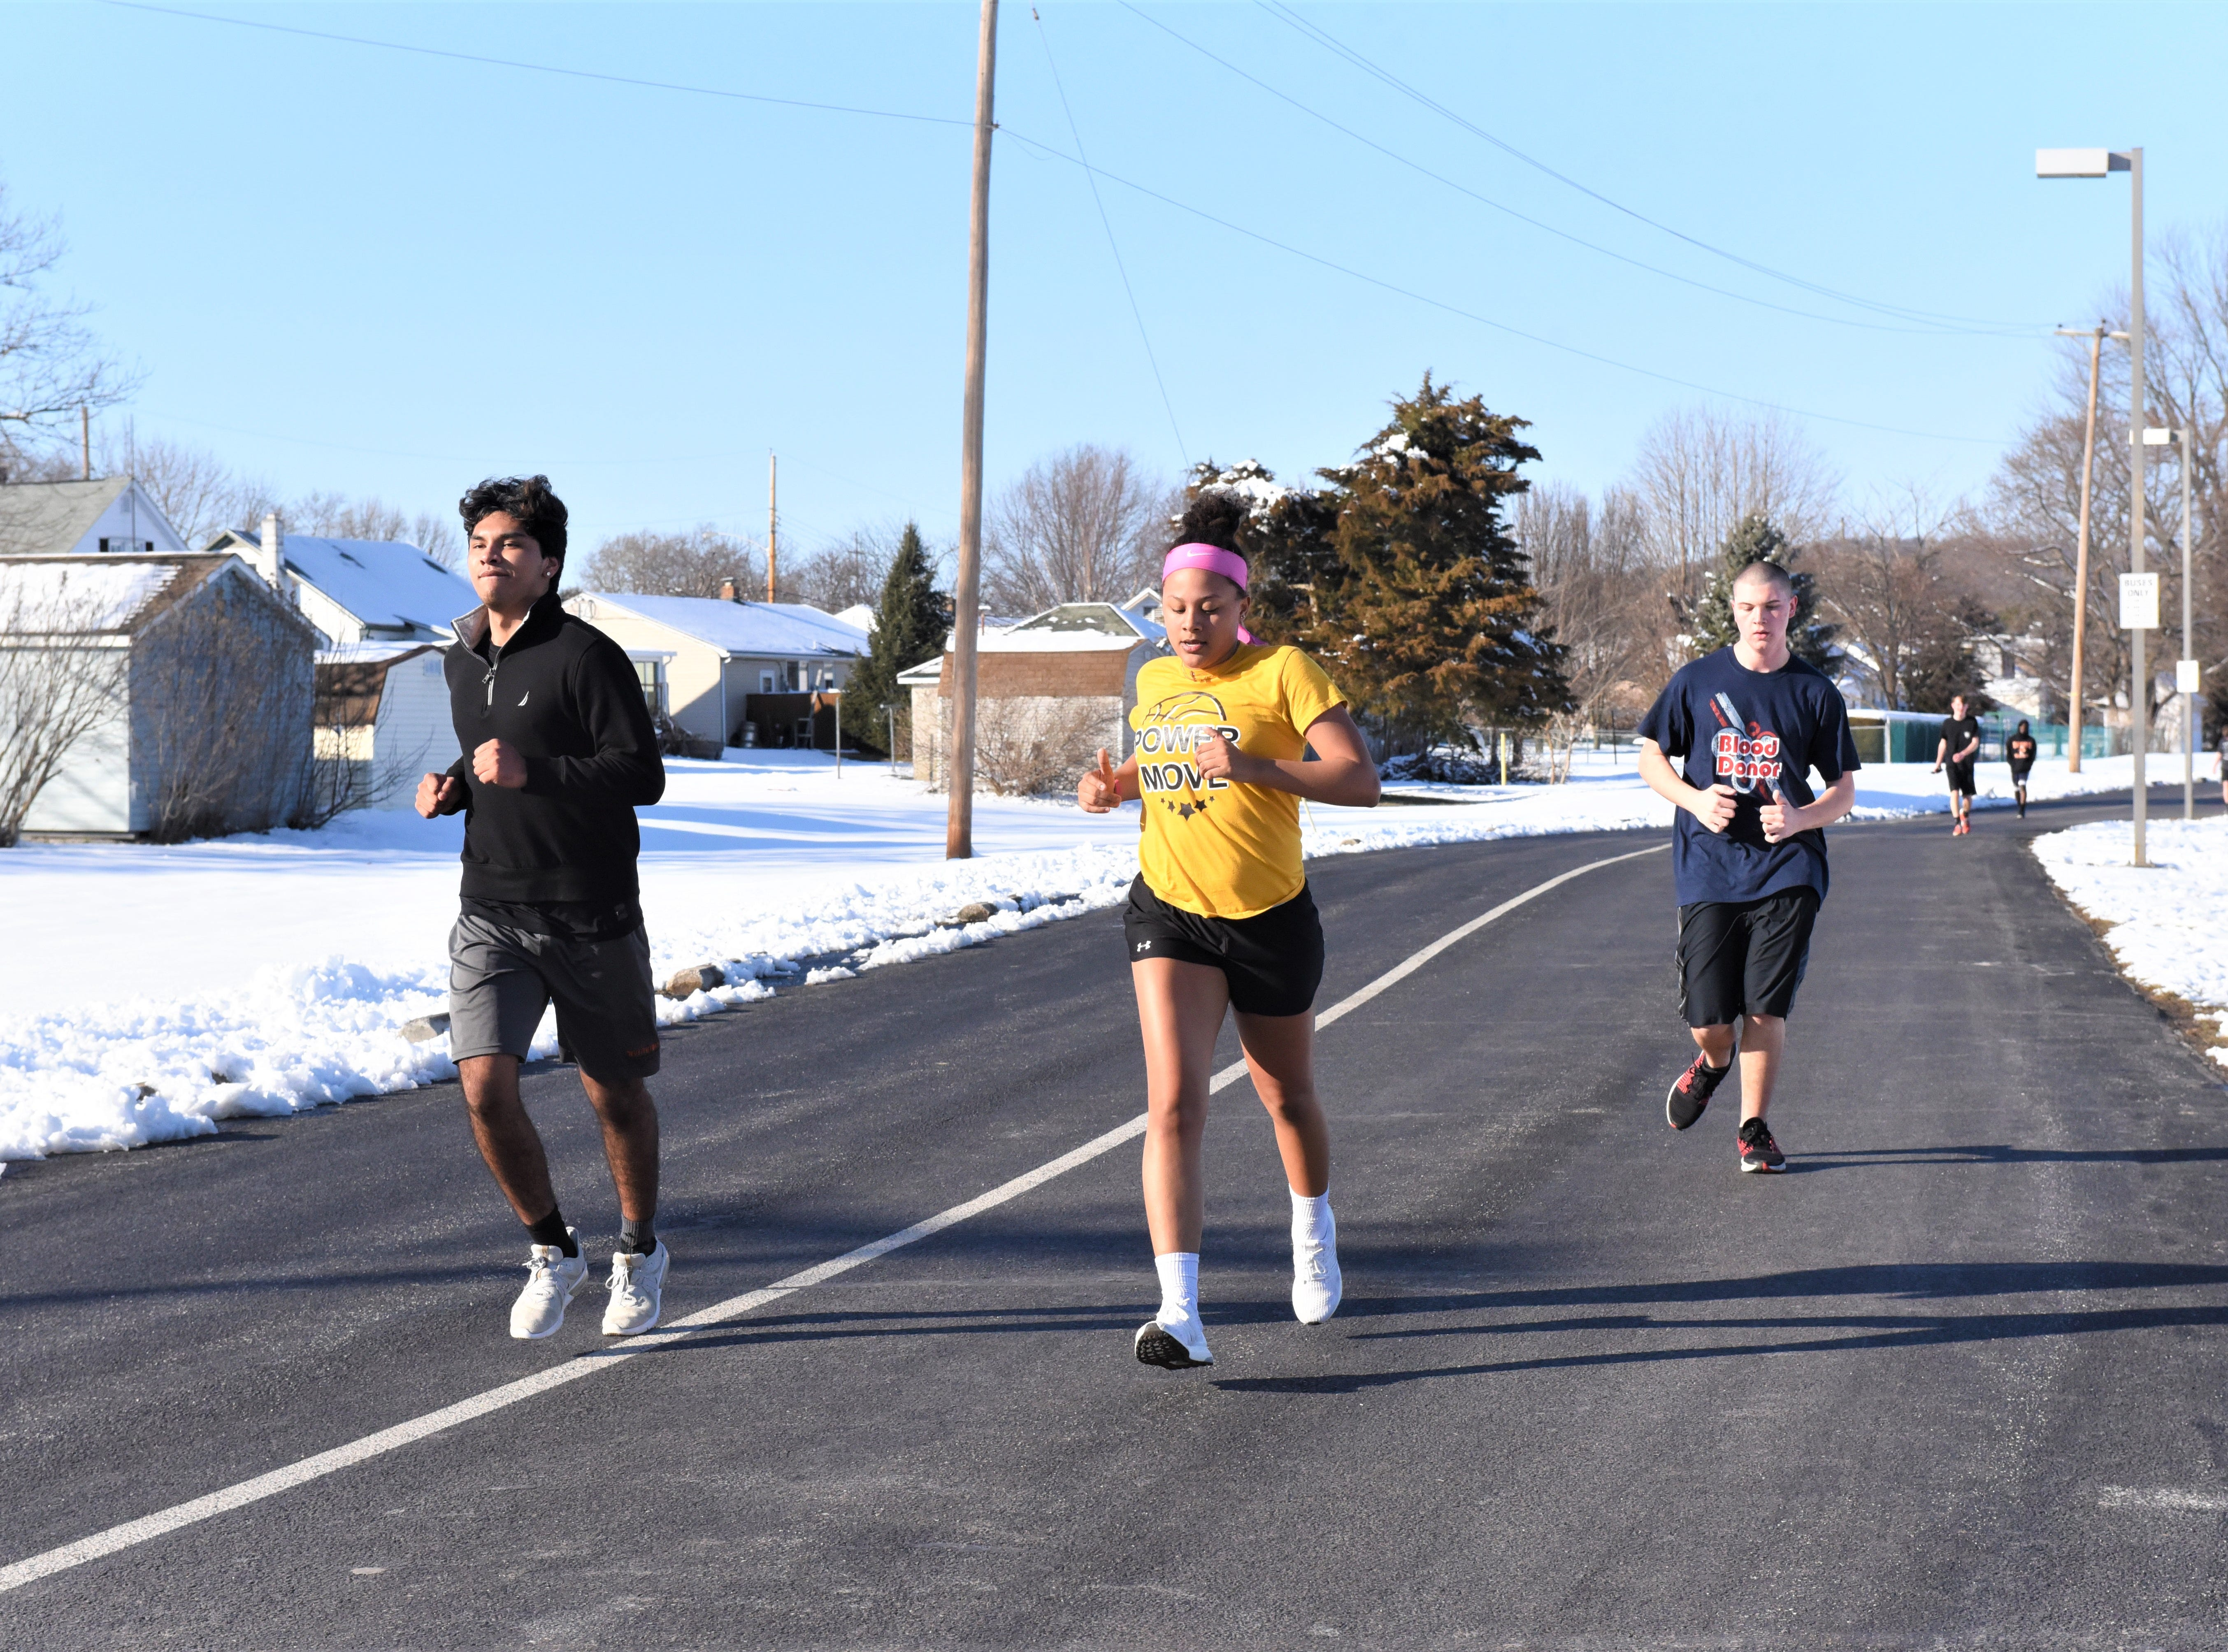 Despite the snow, Hanover Senior High School track and field team runs sprints on the first day of the spring sports season on March 4, 2019.